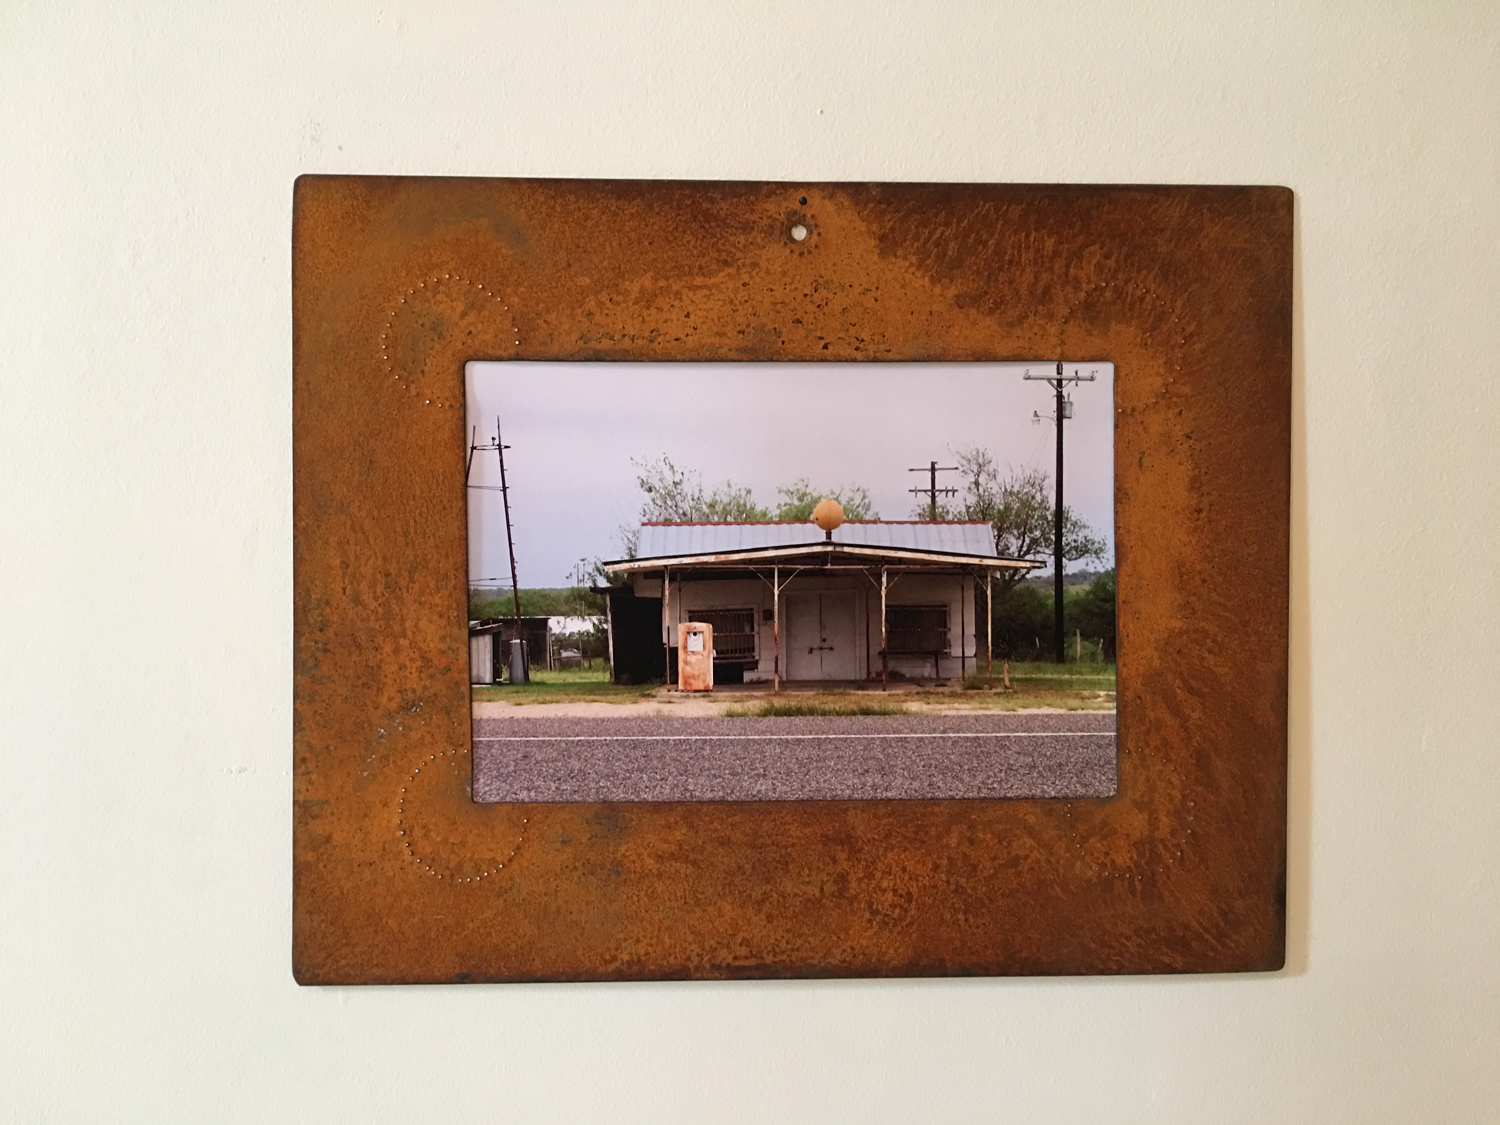 FILLING STATION, closed down